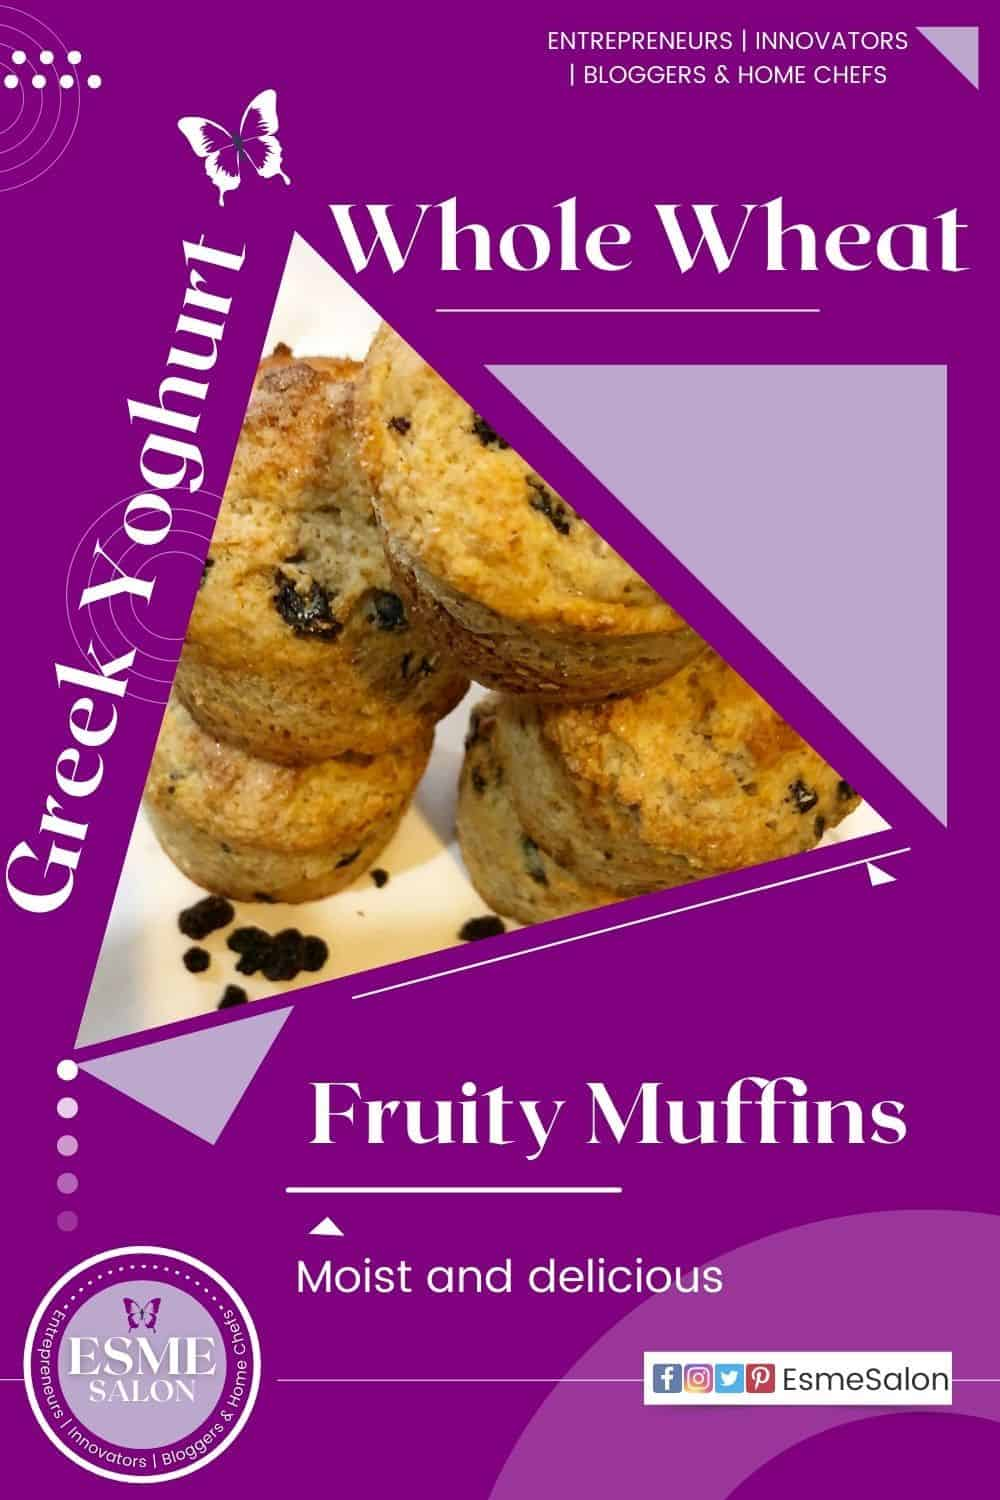 5 Fruity muffins stacked with mixed dried fruit on the side